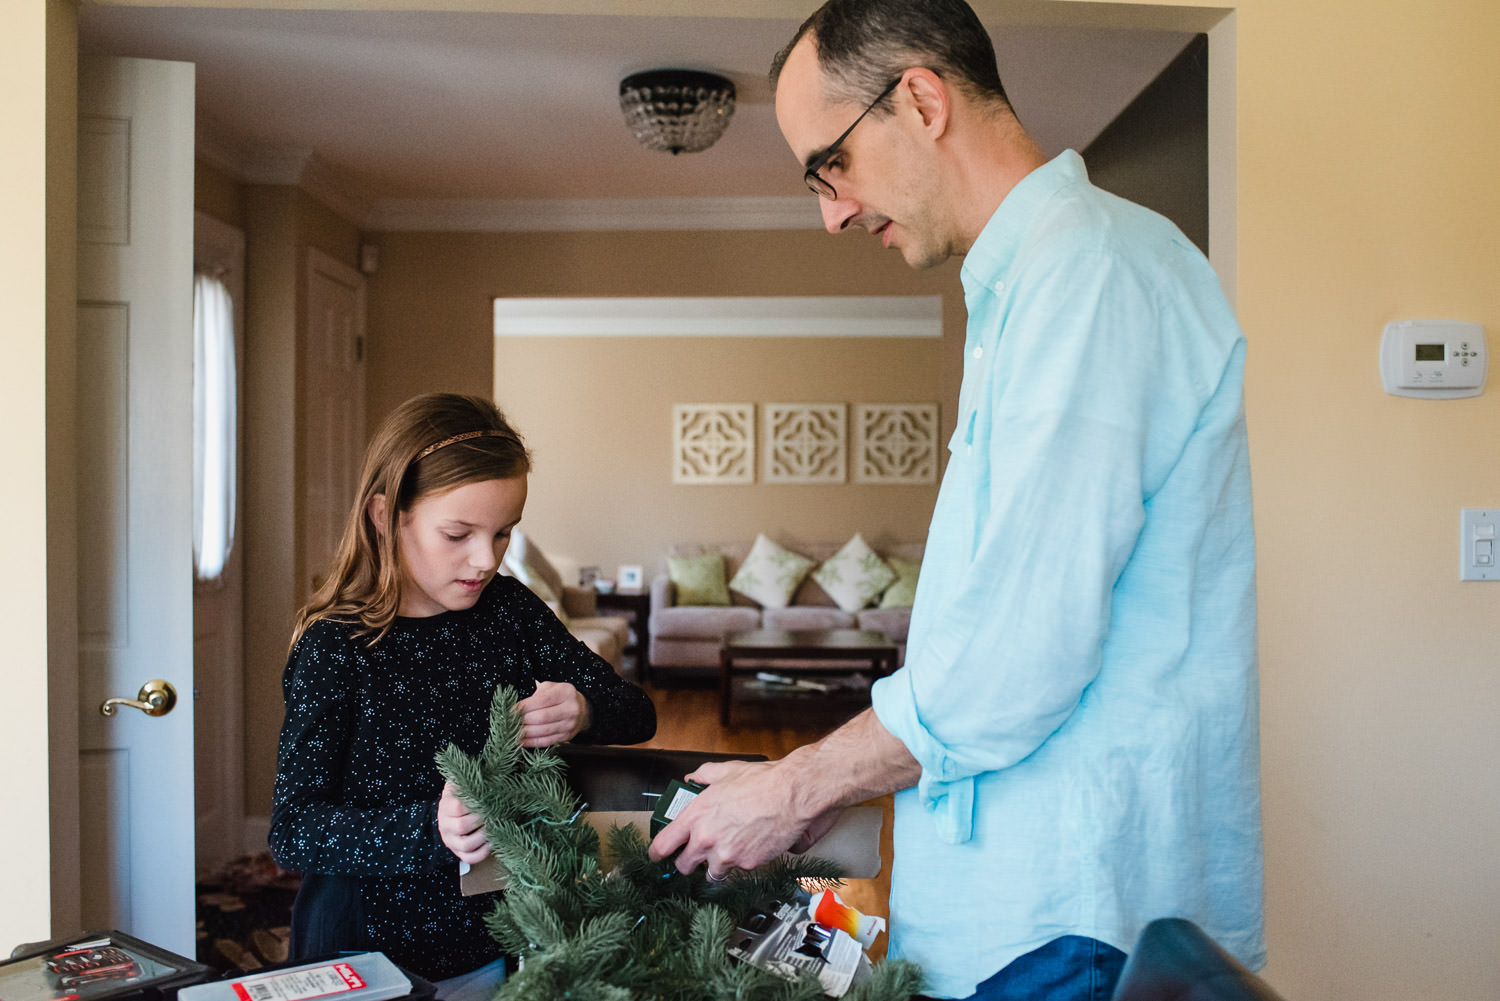 A father and his daughter unpack Christmas decorations.